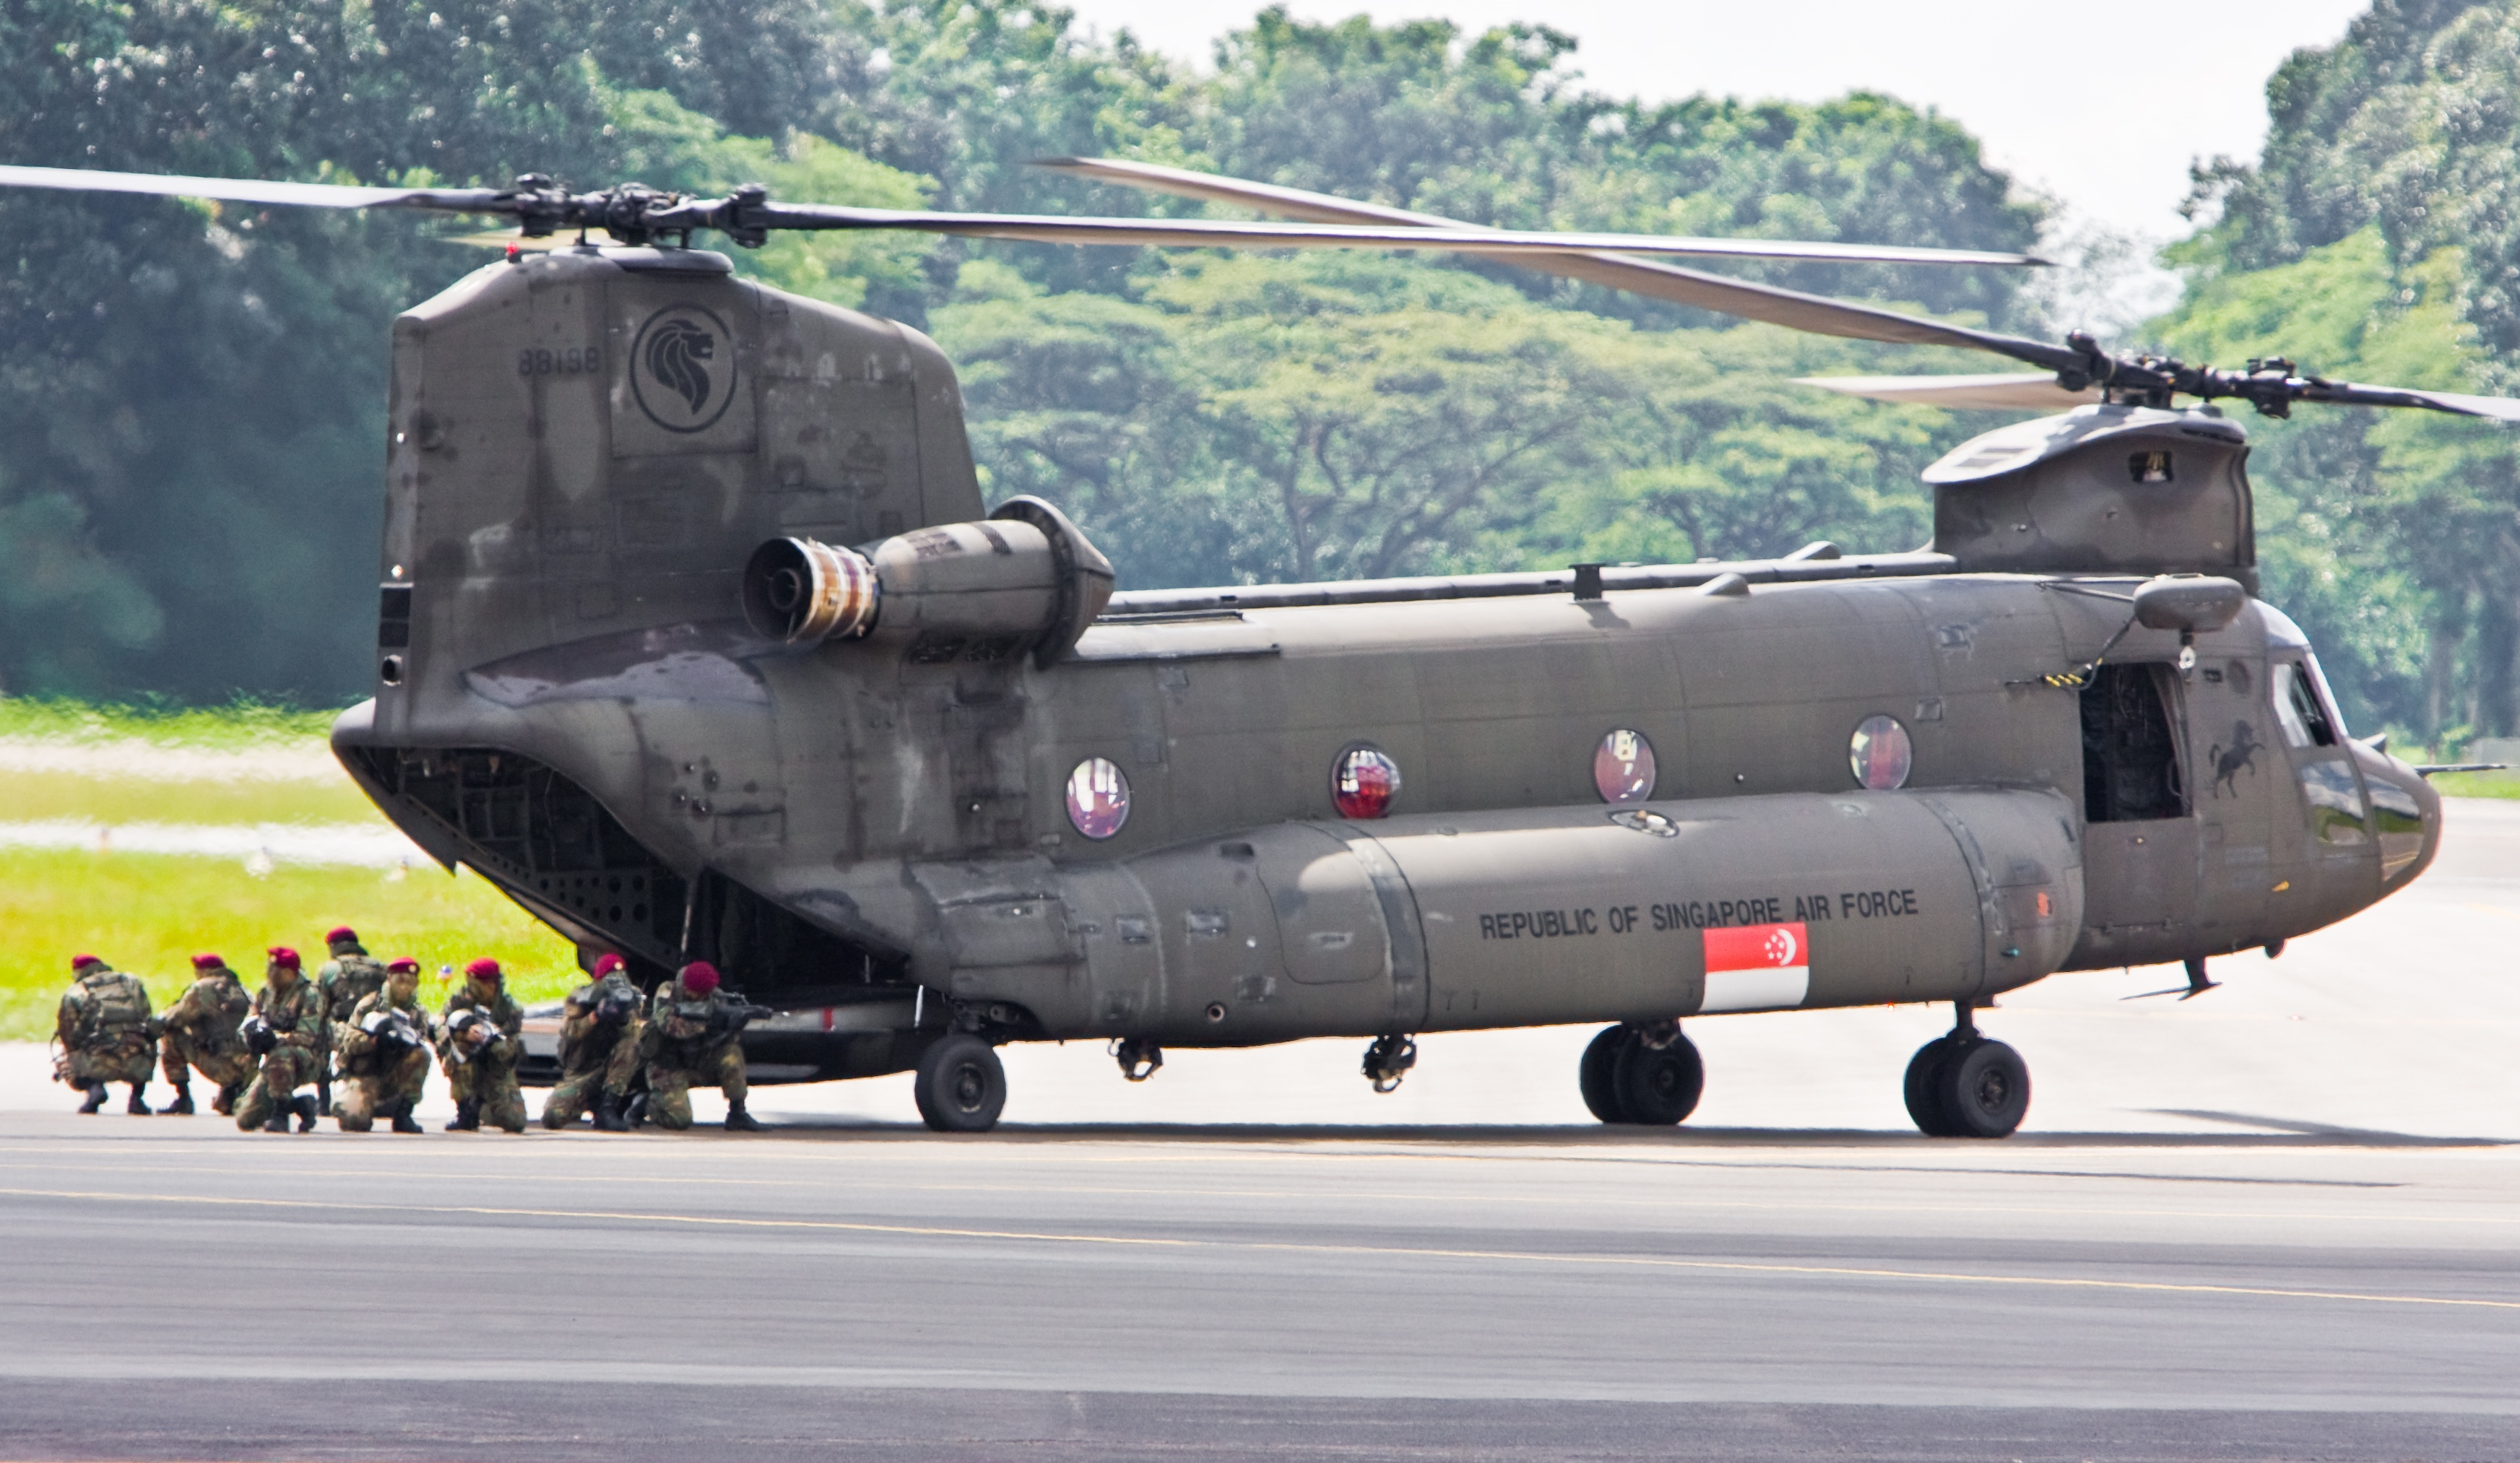 chinook helicopter interior with File Rsaf Open House 2008 Chinook on 6752206021 besides Question Many Apache Helicopters Can C 5 Hold Answer Inside additionally Mil Mi 24 together with Raf7b12 as well Mil Mi 24 Hind Assault And Attack.